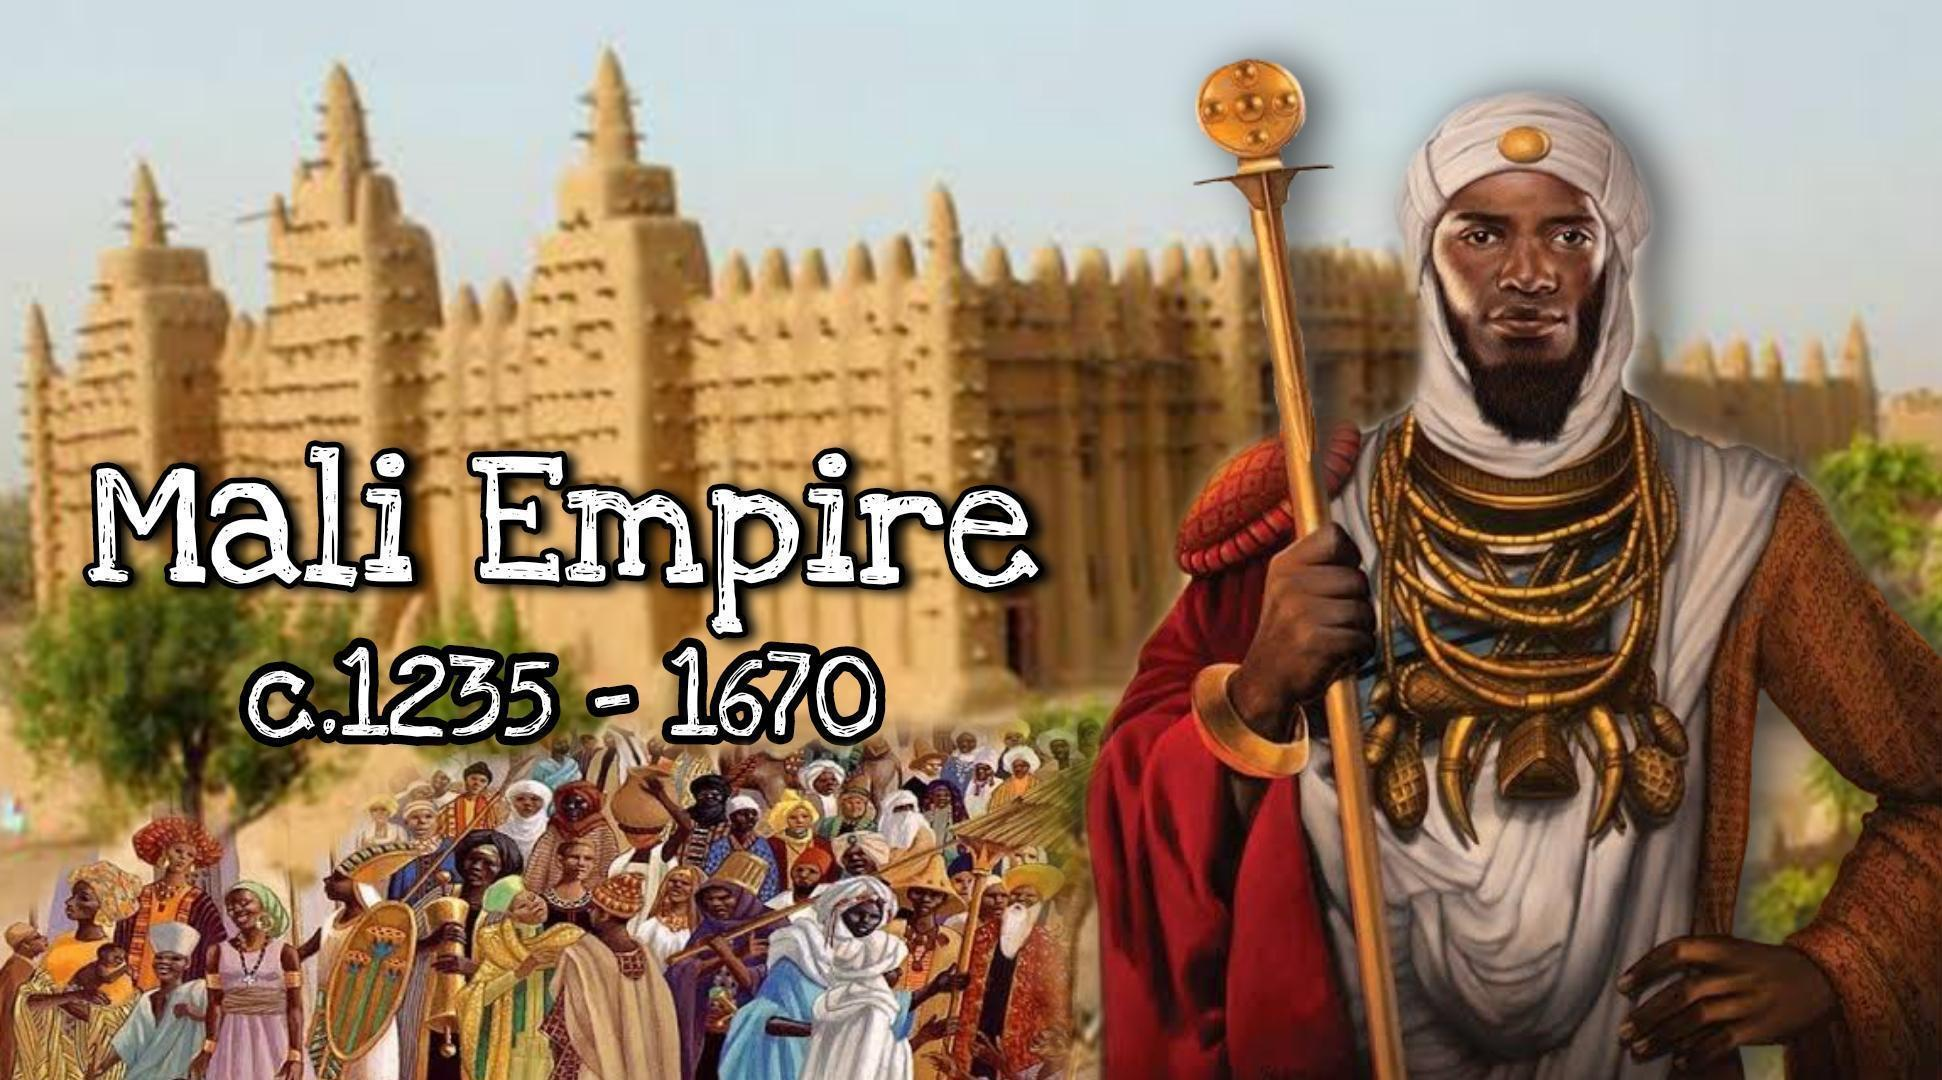 Mali Empire, one of the strongest African Empires